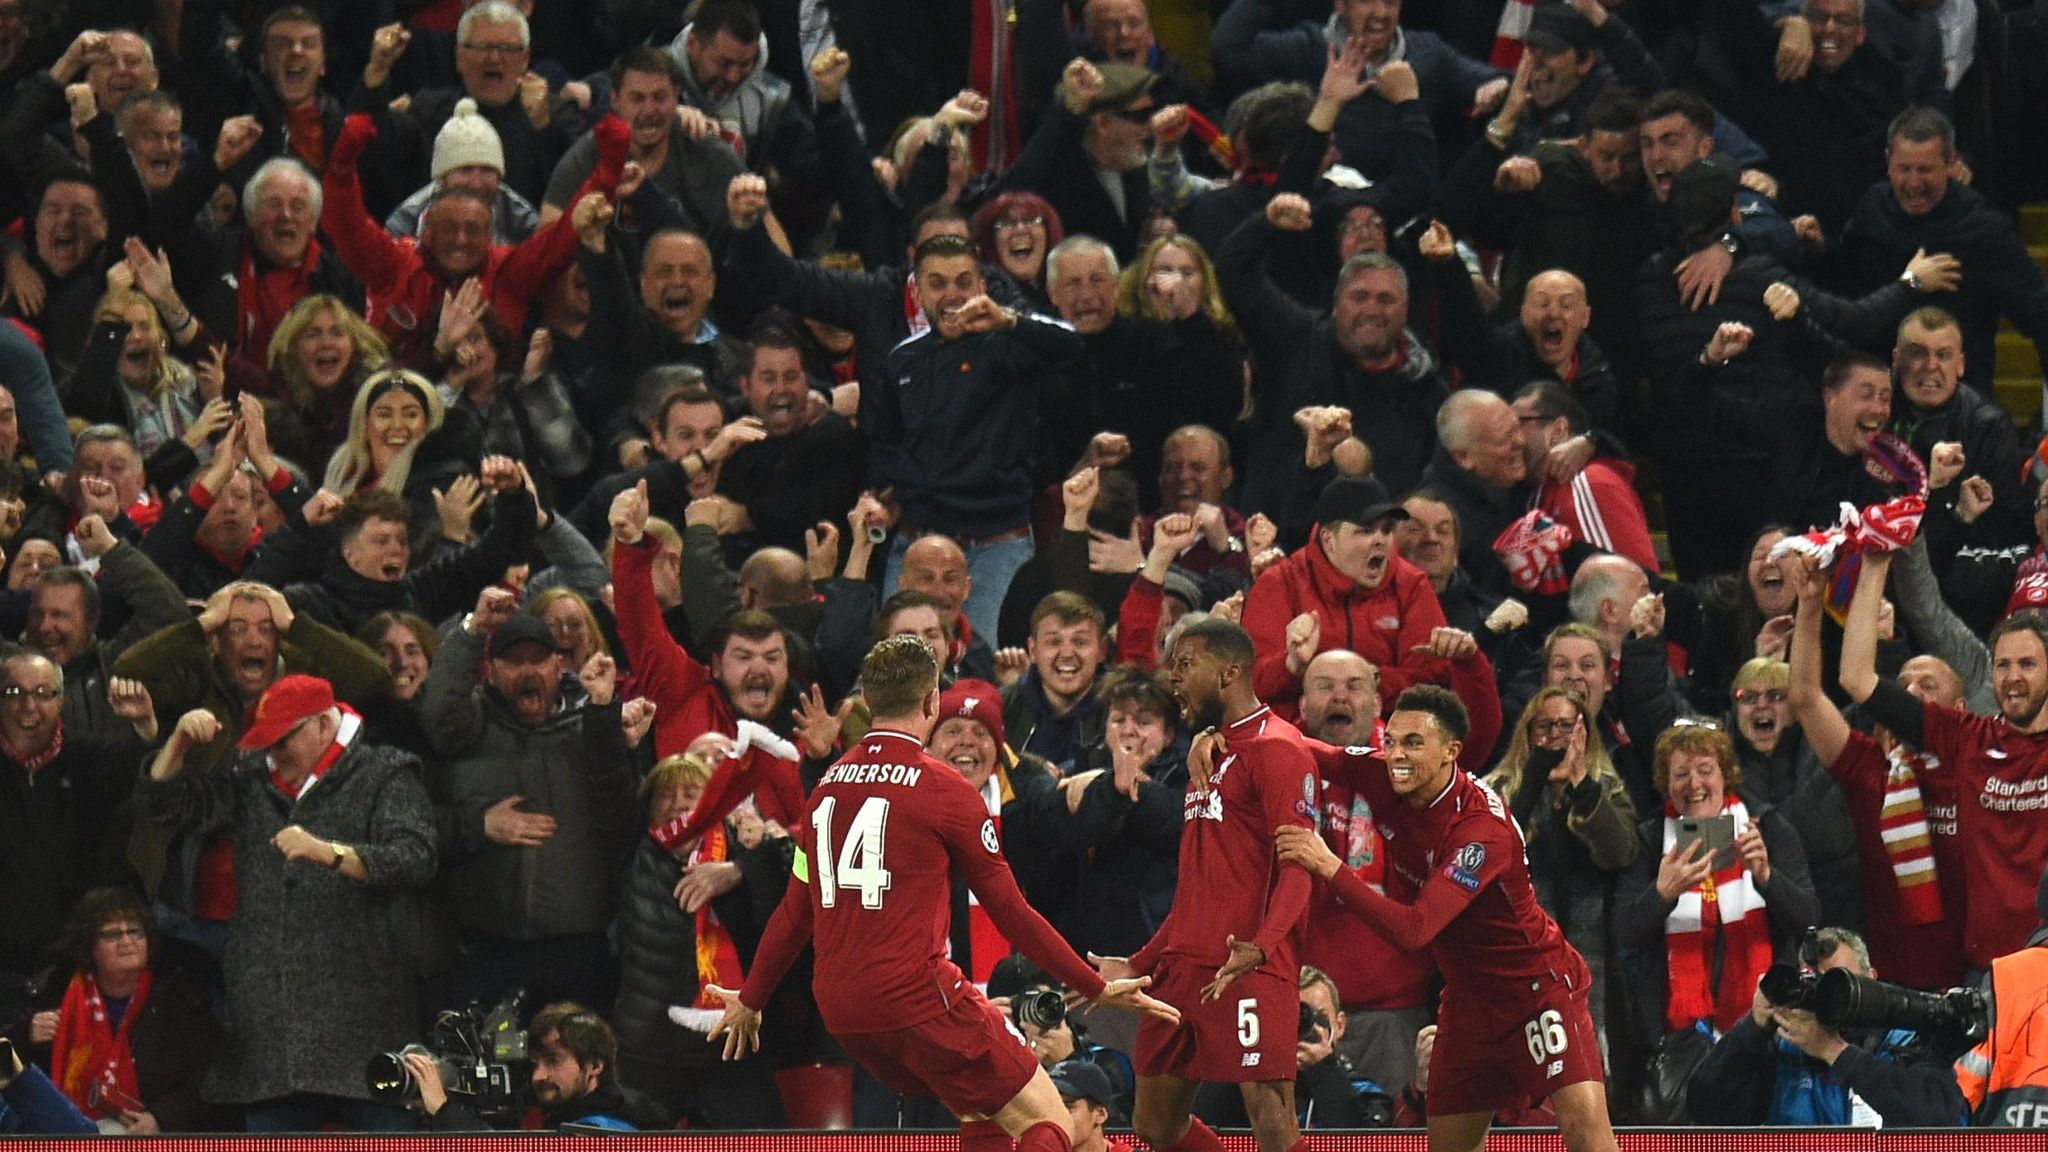 Liverpool 4-0 Barcelona: Anfield crowd inspires the unthinkable